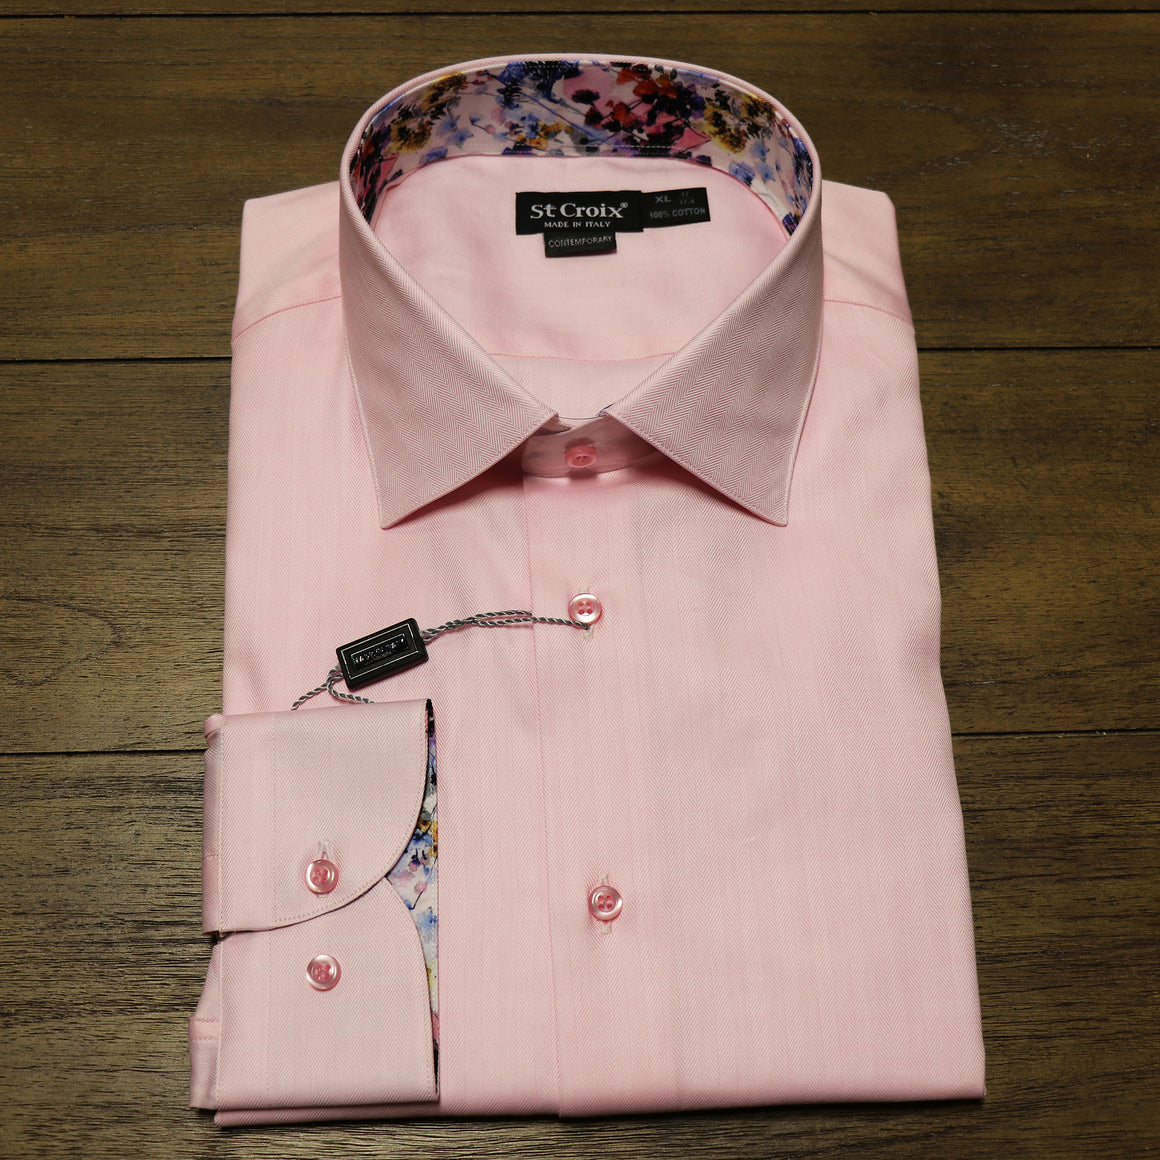 St. Croix Pink with Floral Trim Sport Shirt